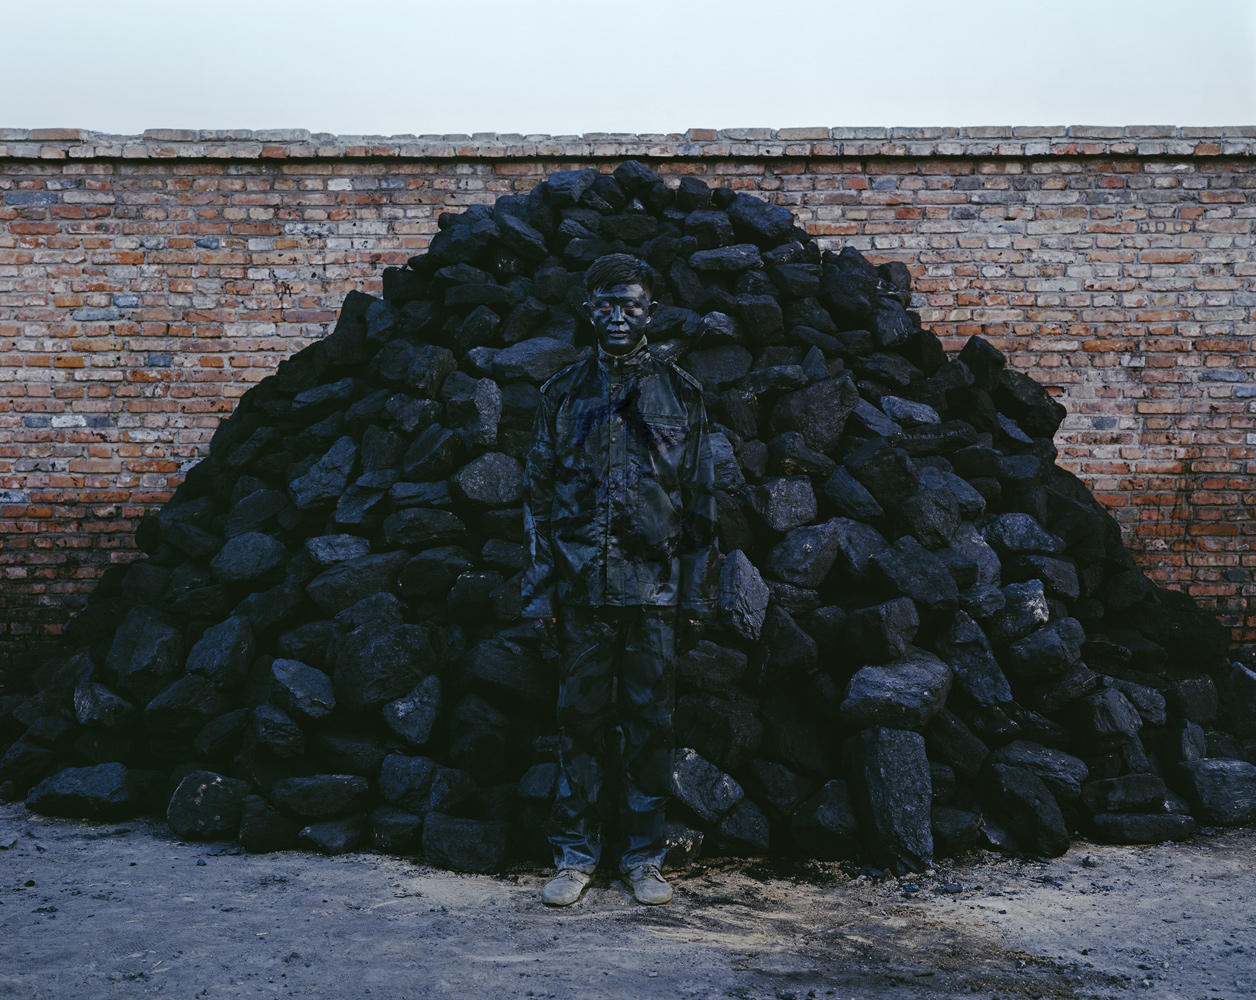 Hiding in the City No. 95—Coal Pile, 2010